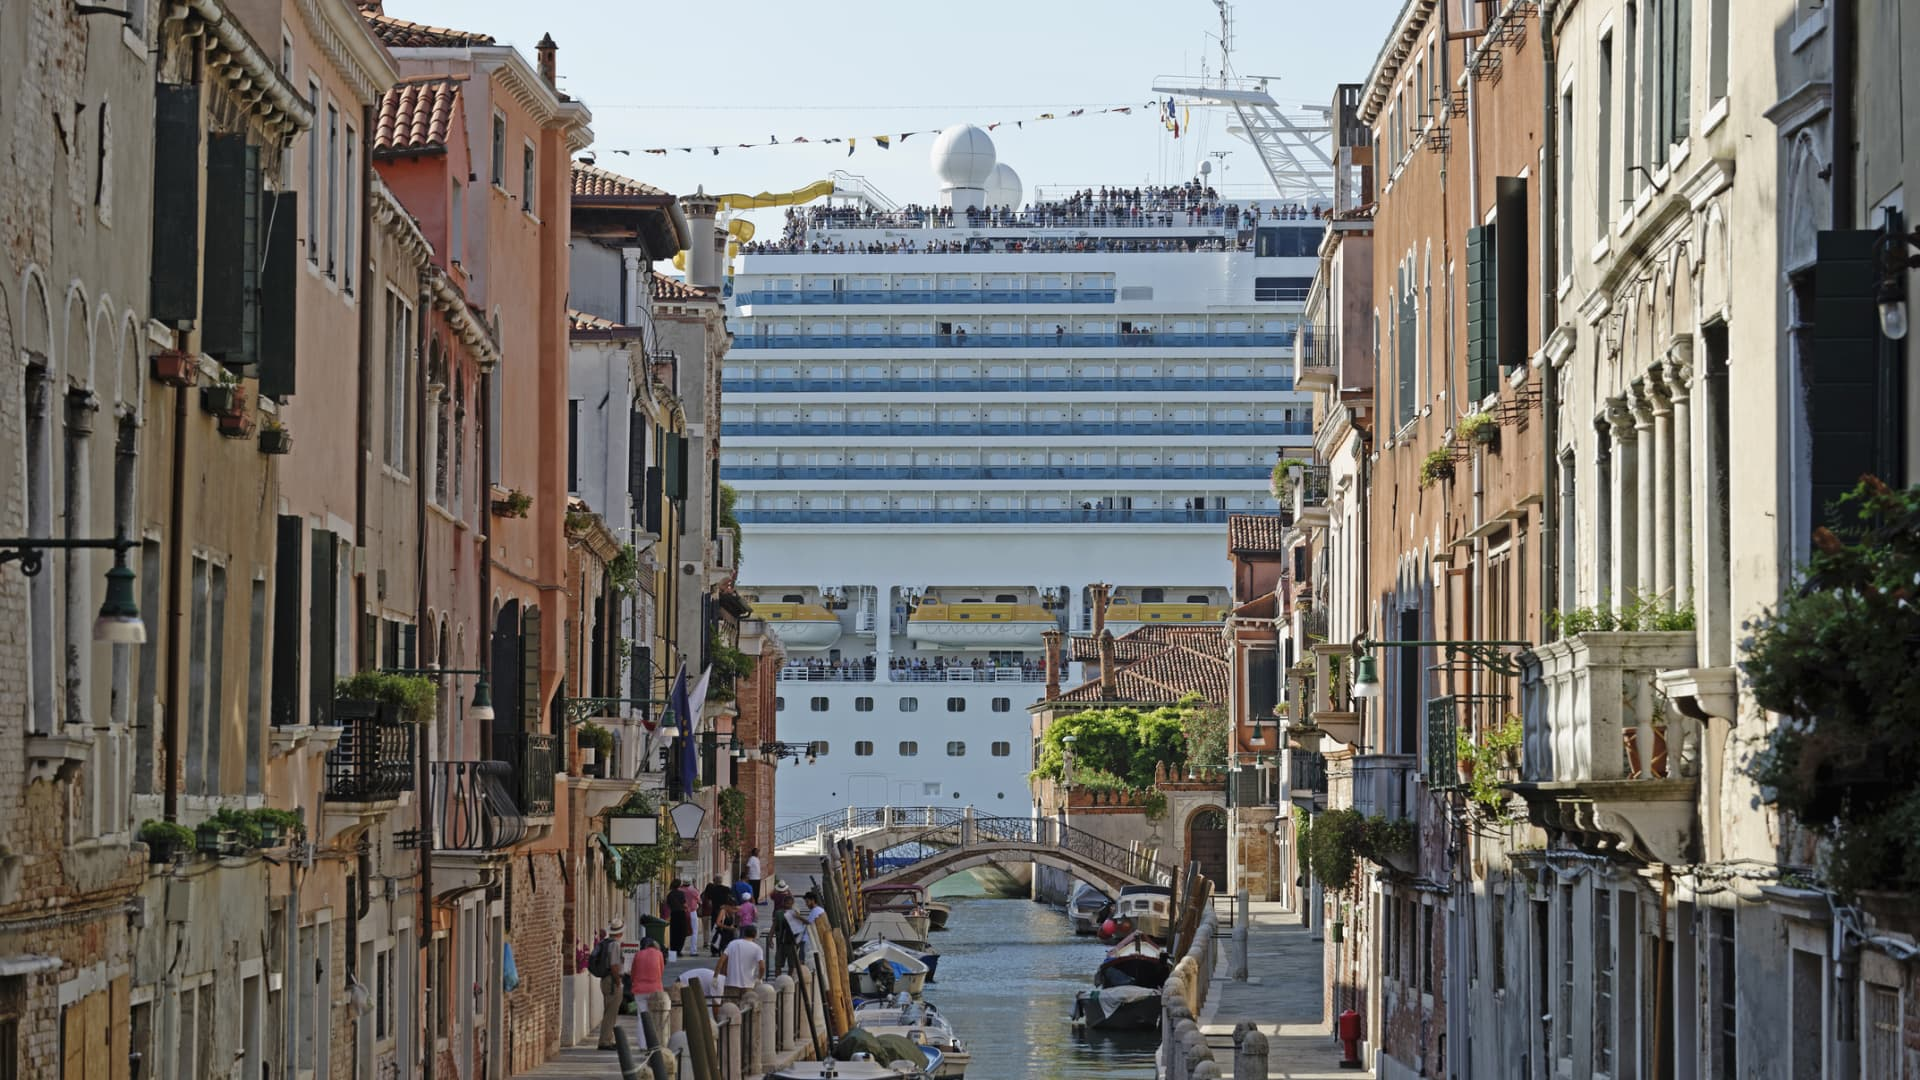 A cruise liner passes by the historic canals of Venice, Italy.